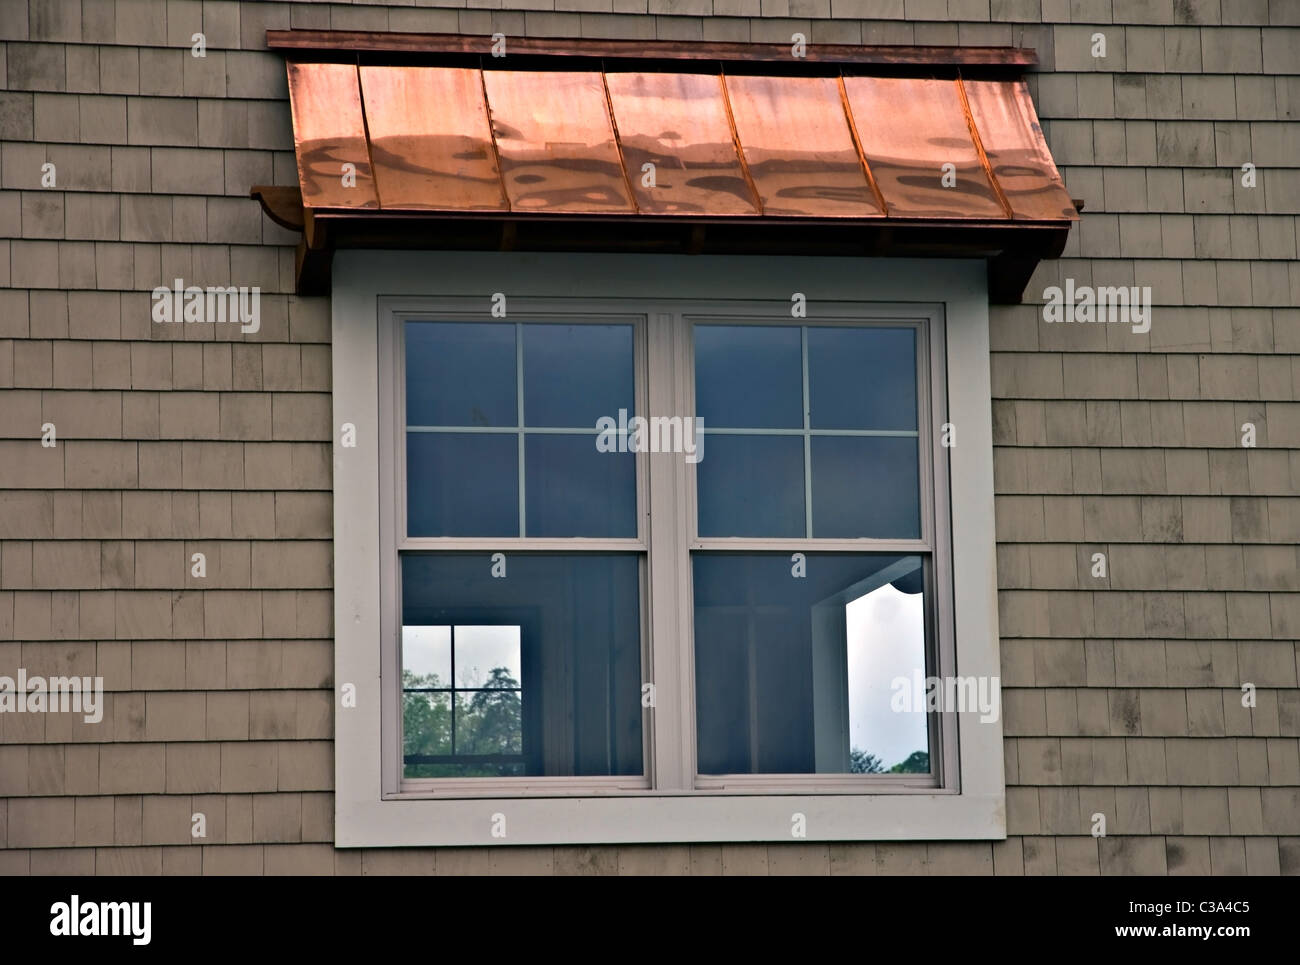 A copper window awning on the side of a building. - Stock Image